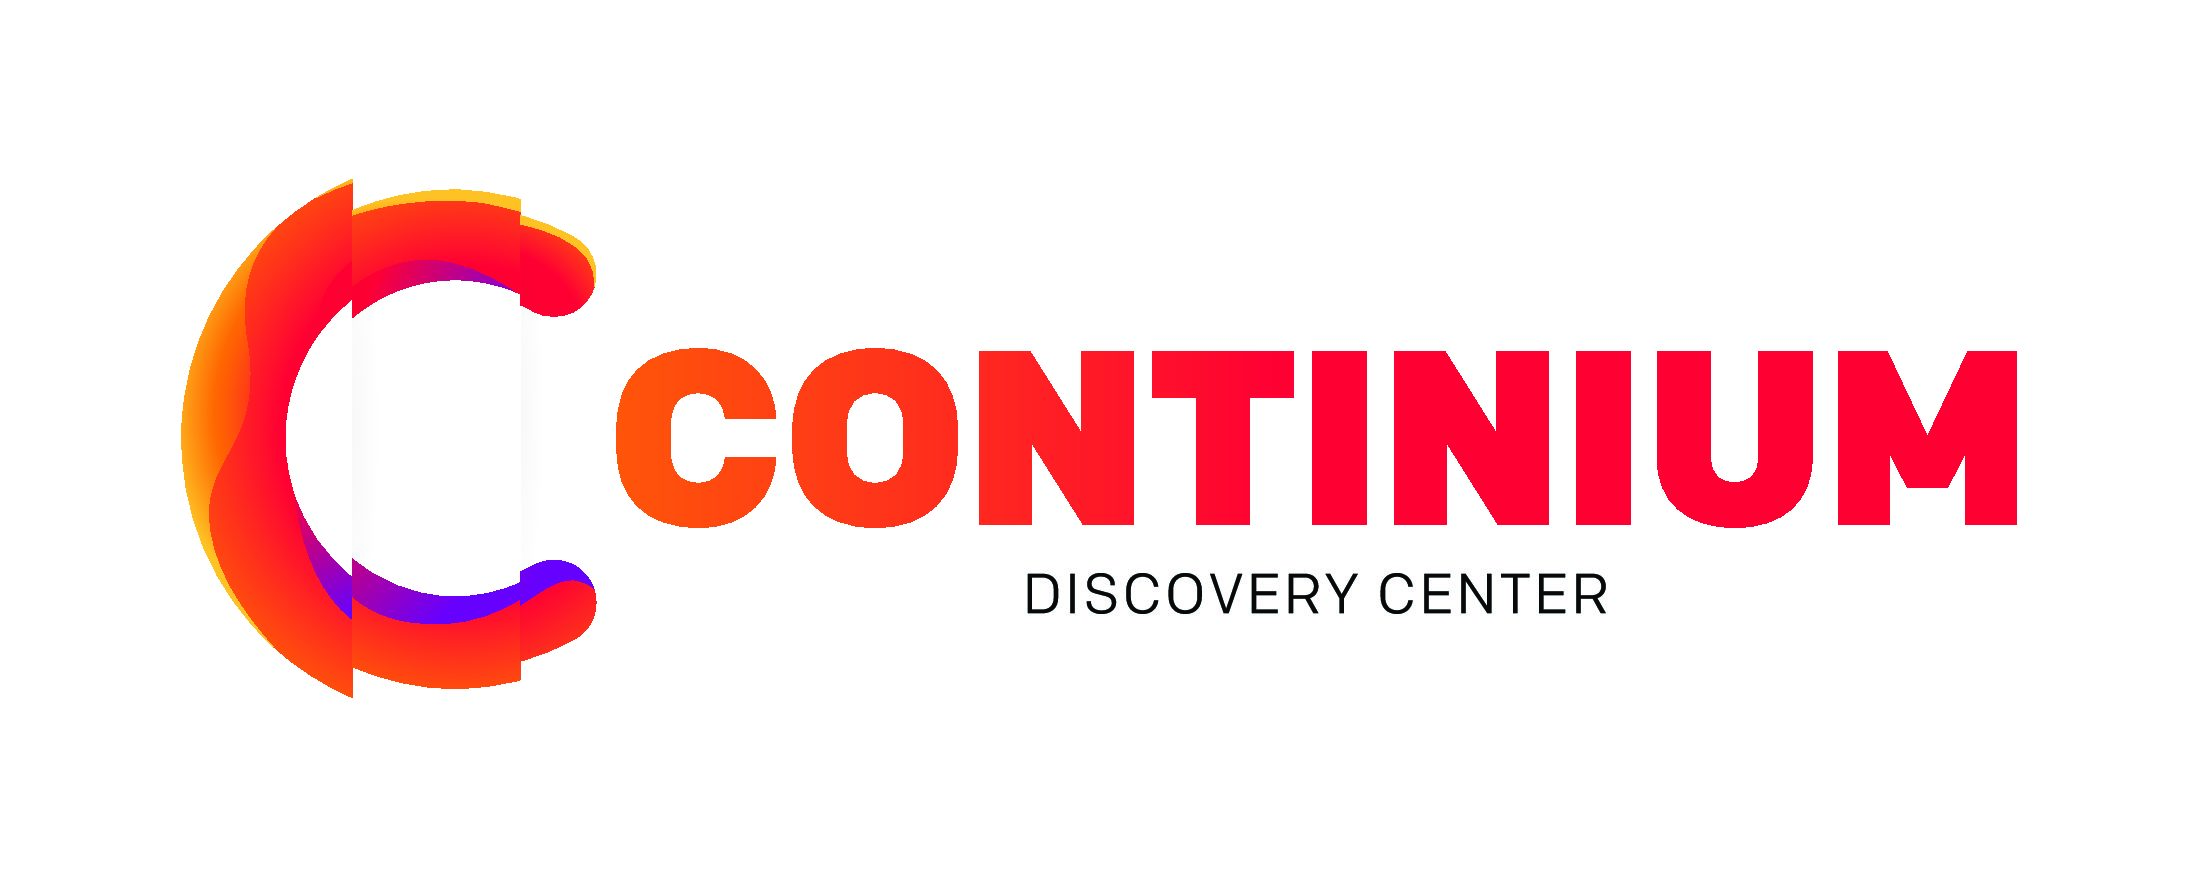 Logo Continium discovery center